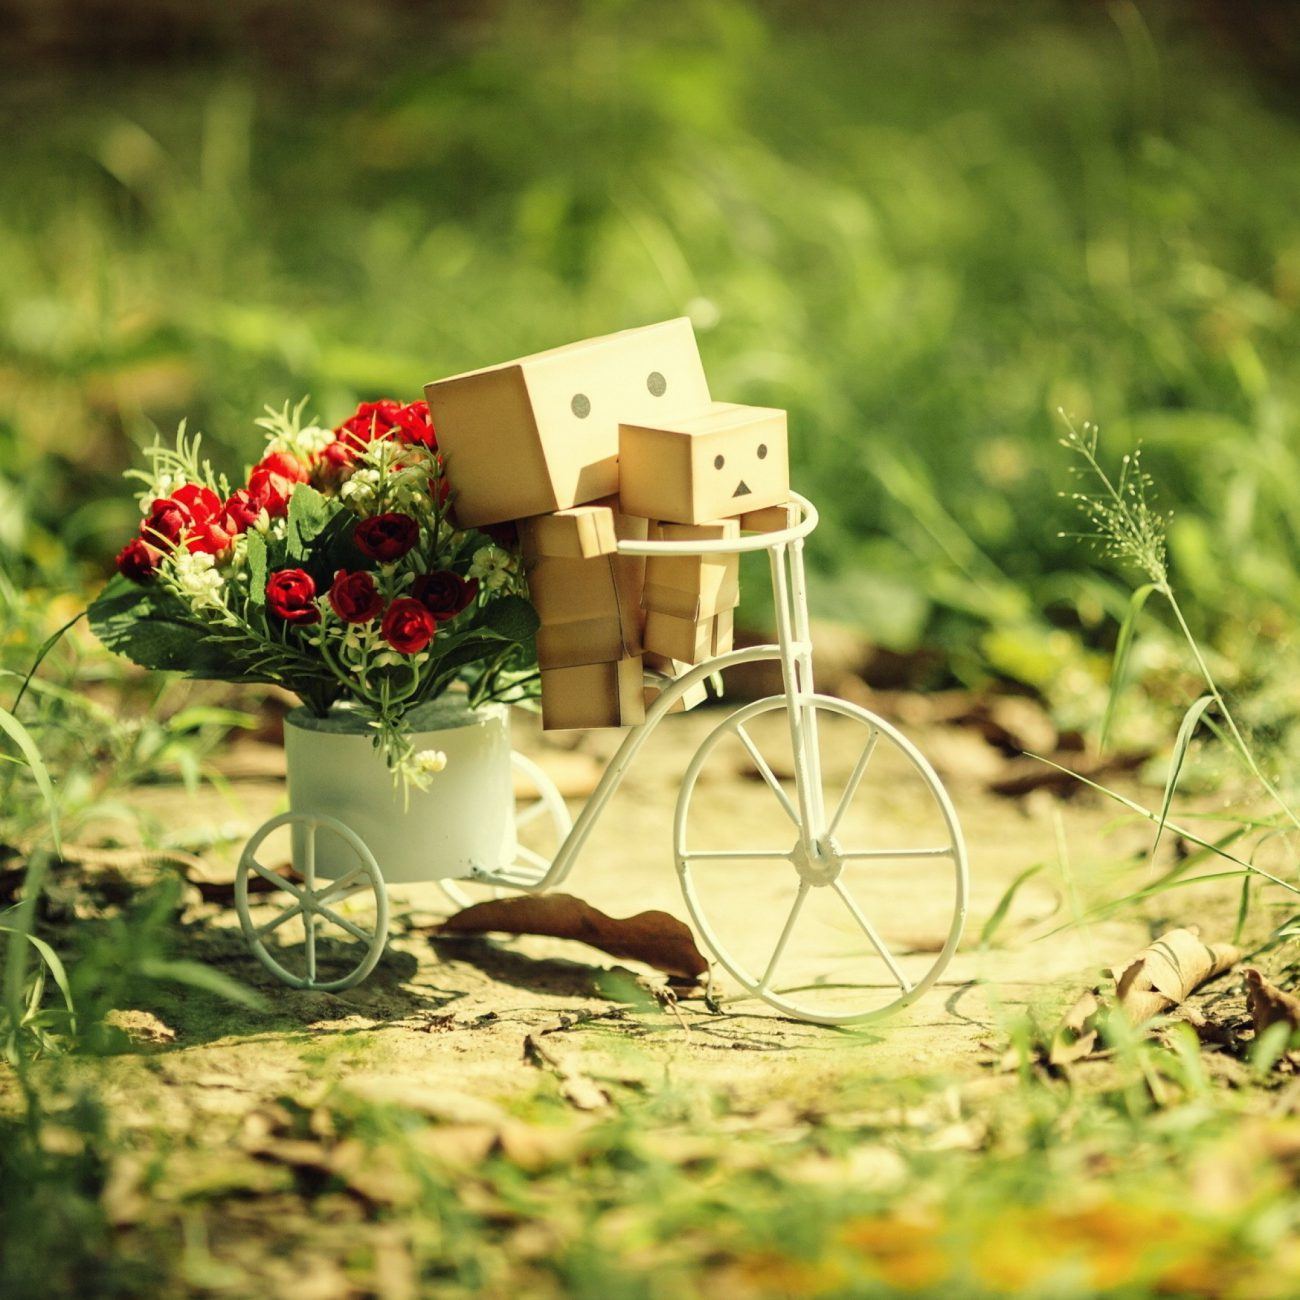 danboard_bicycle_cardboard_robots_flowers_grass_64643_2048x2048